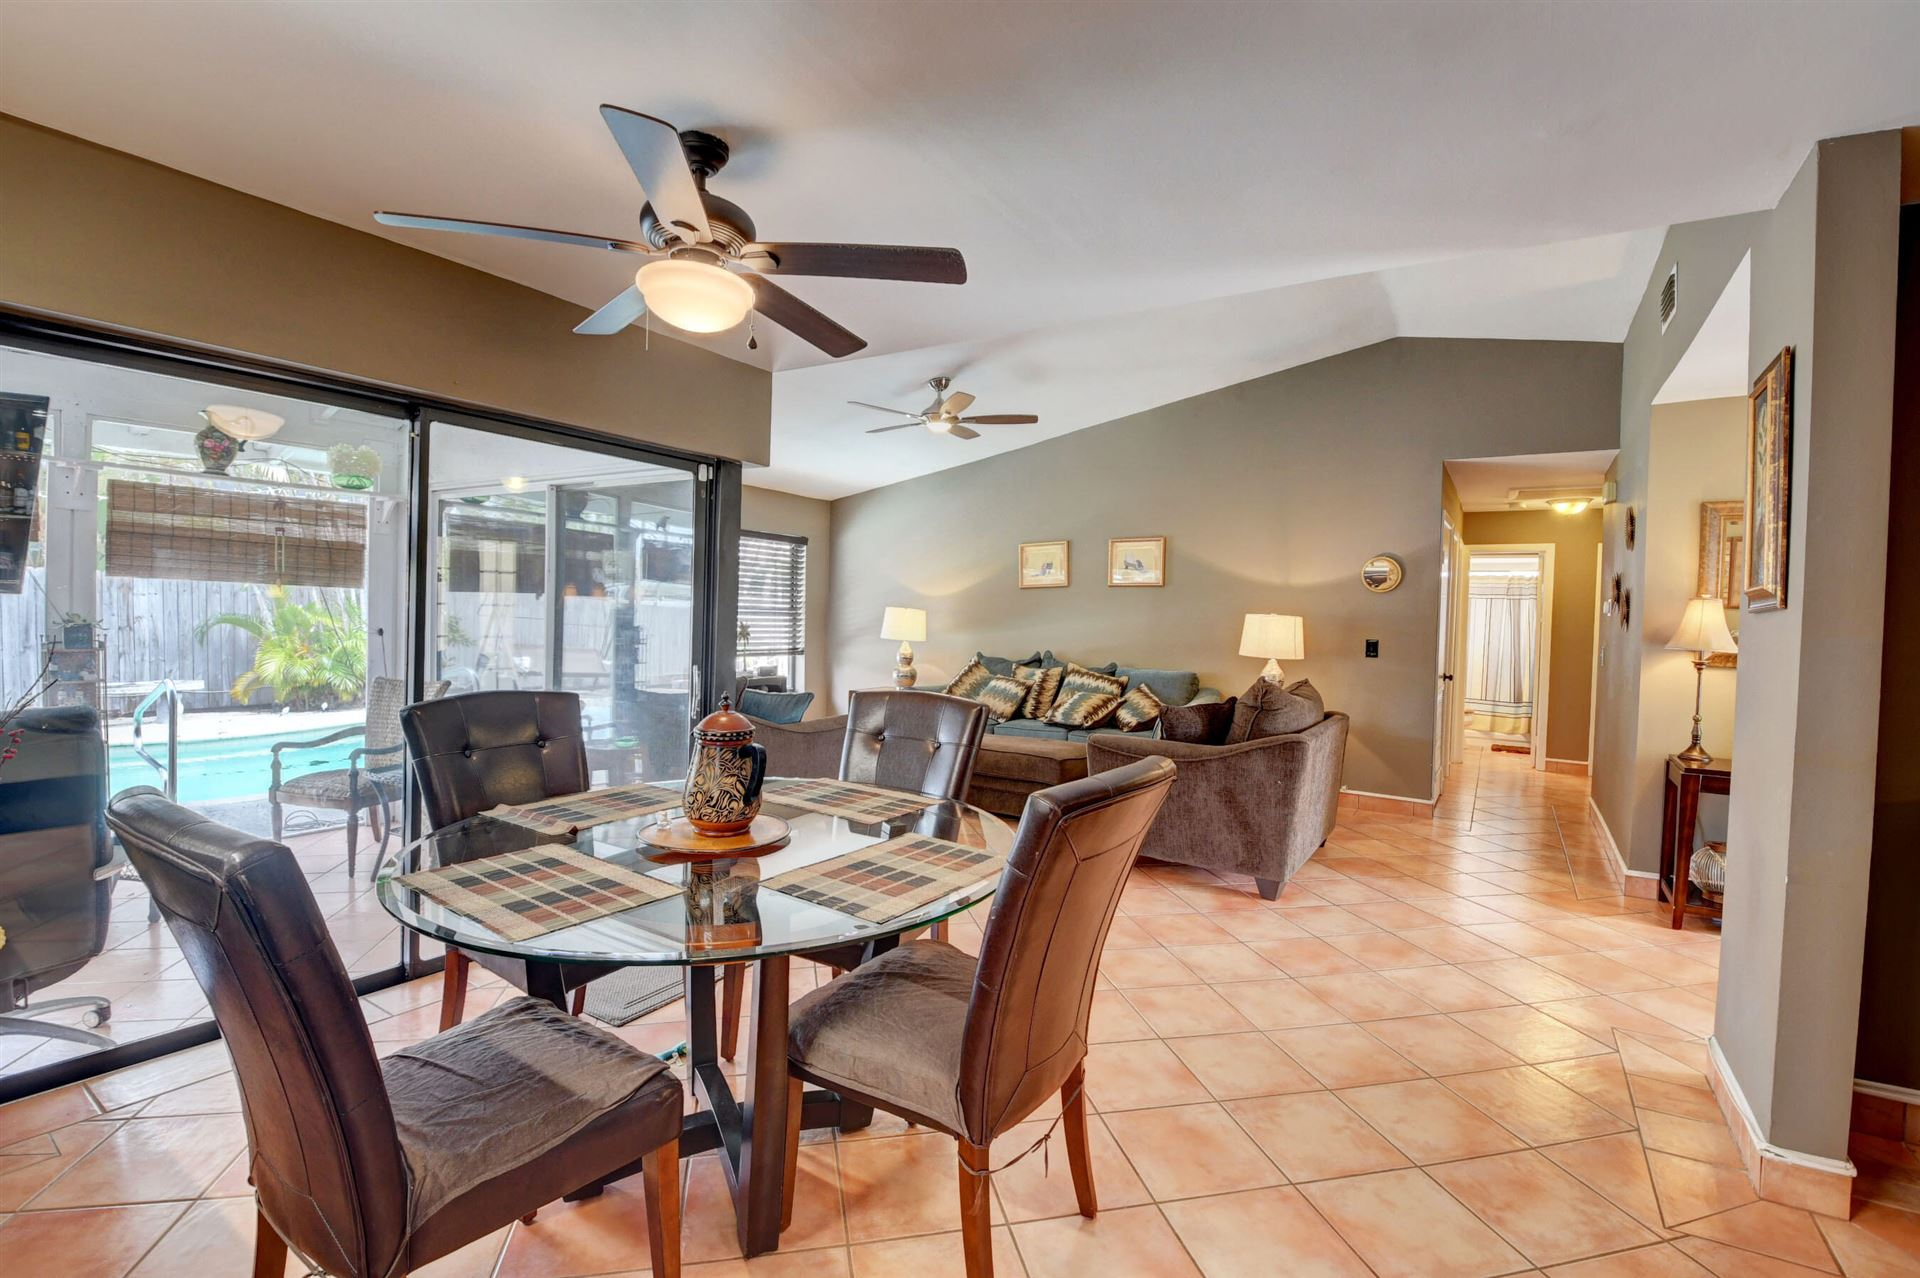 17551 Weeping Willow Trail, Boca Raton, FL 33487 - #: RX-10724761